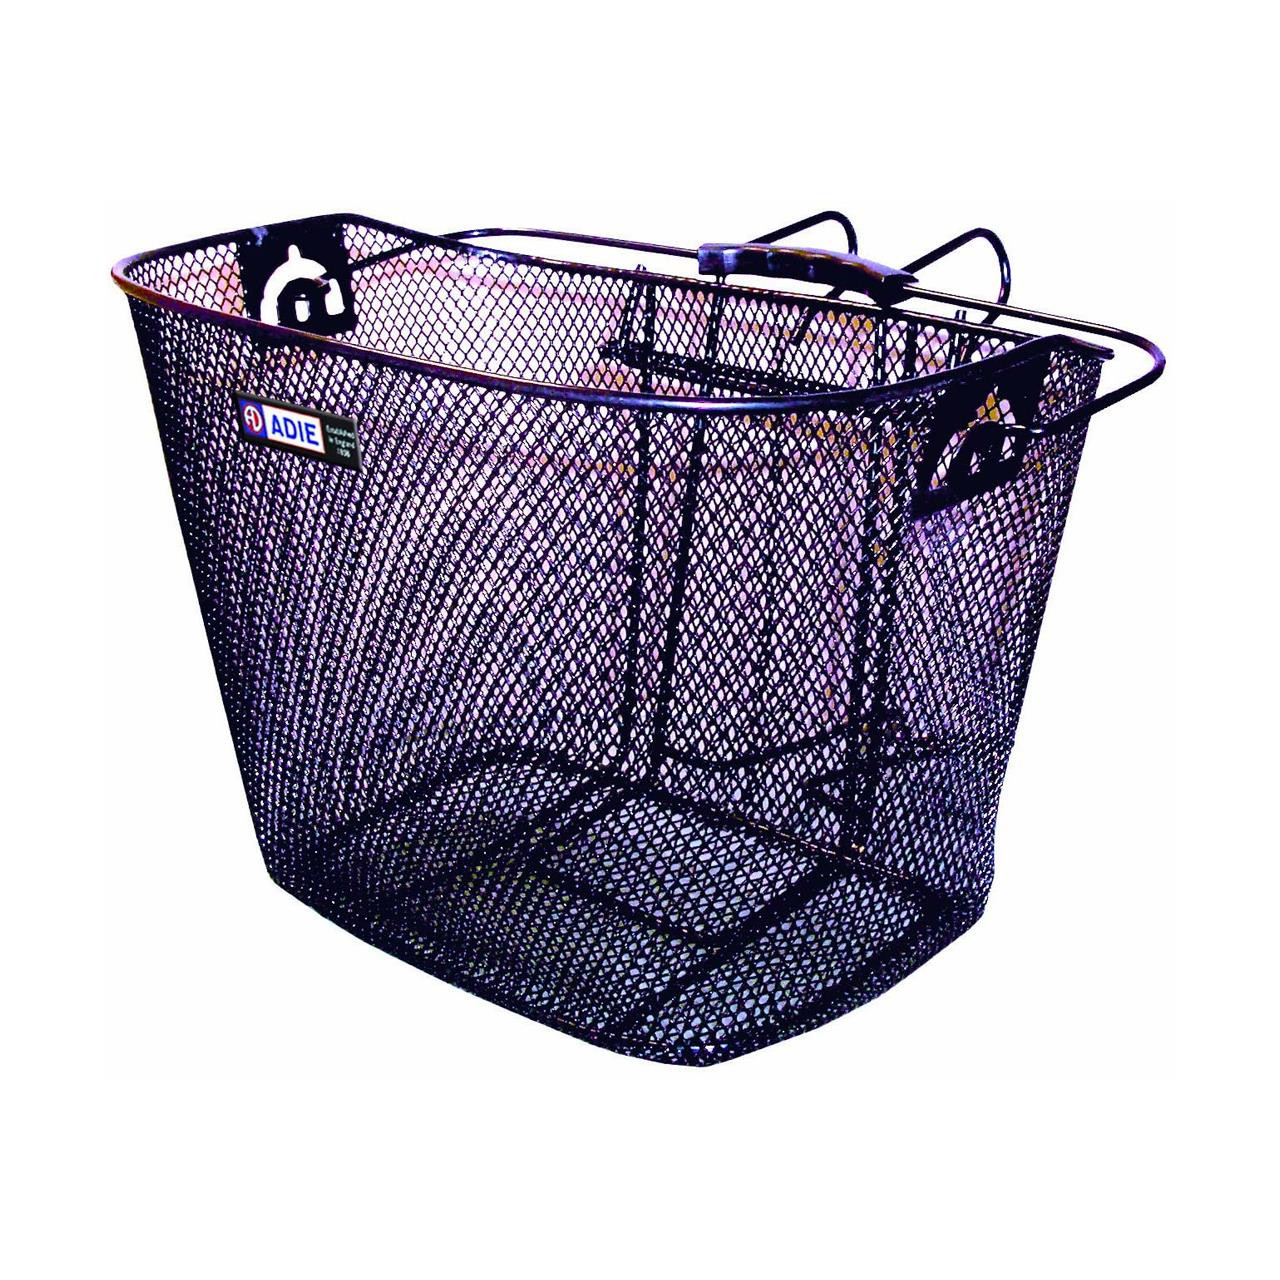 Adie Front Basket Mesh with Metal Bracket (Black)